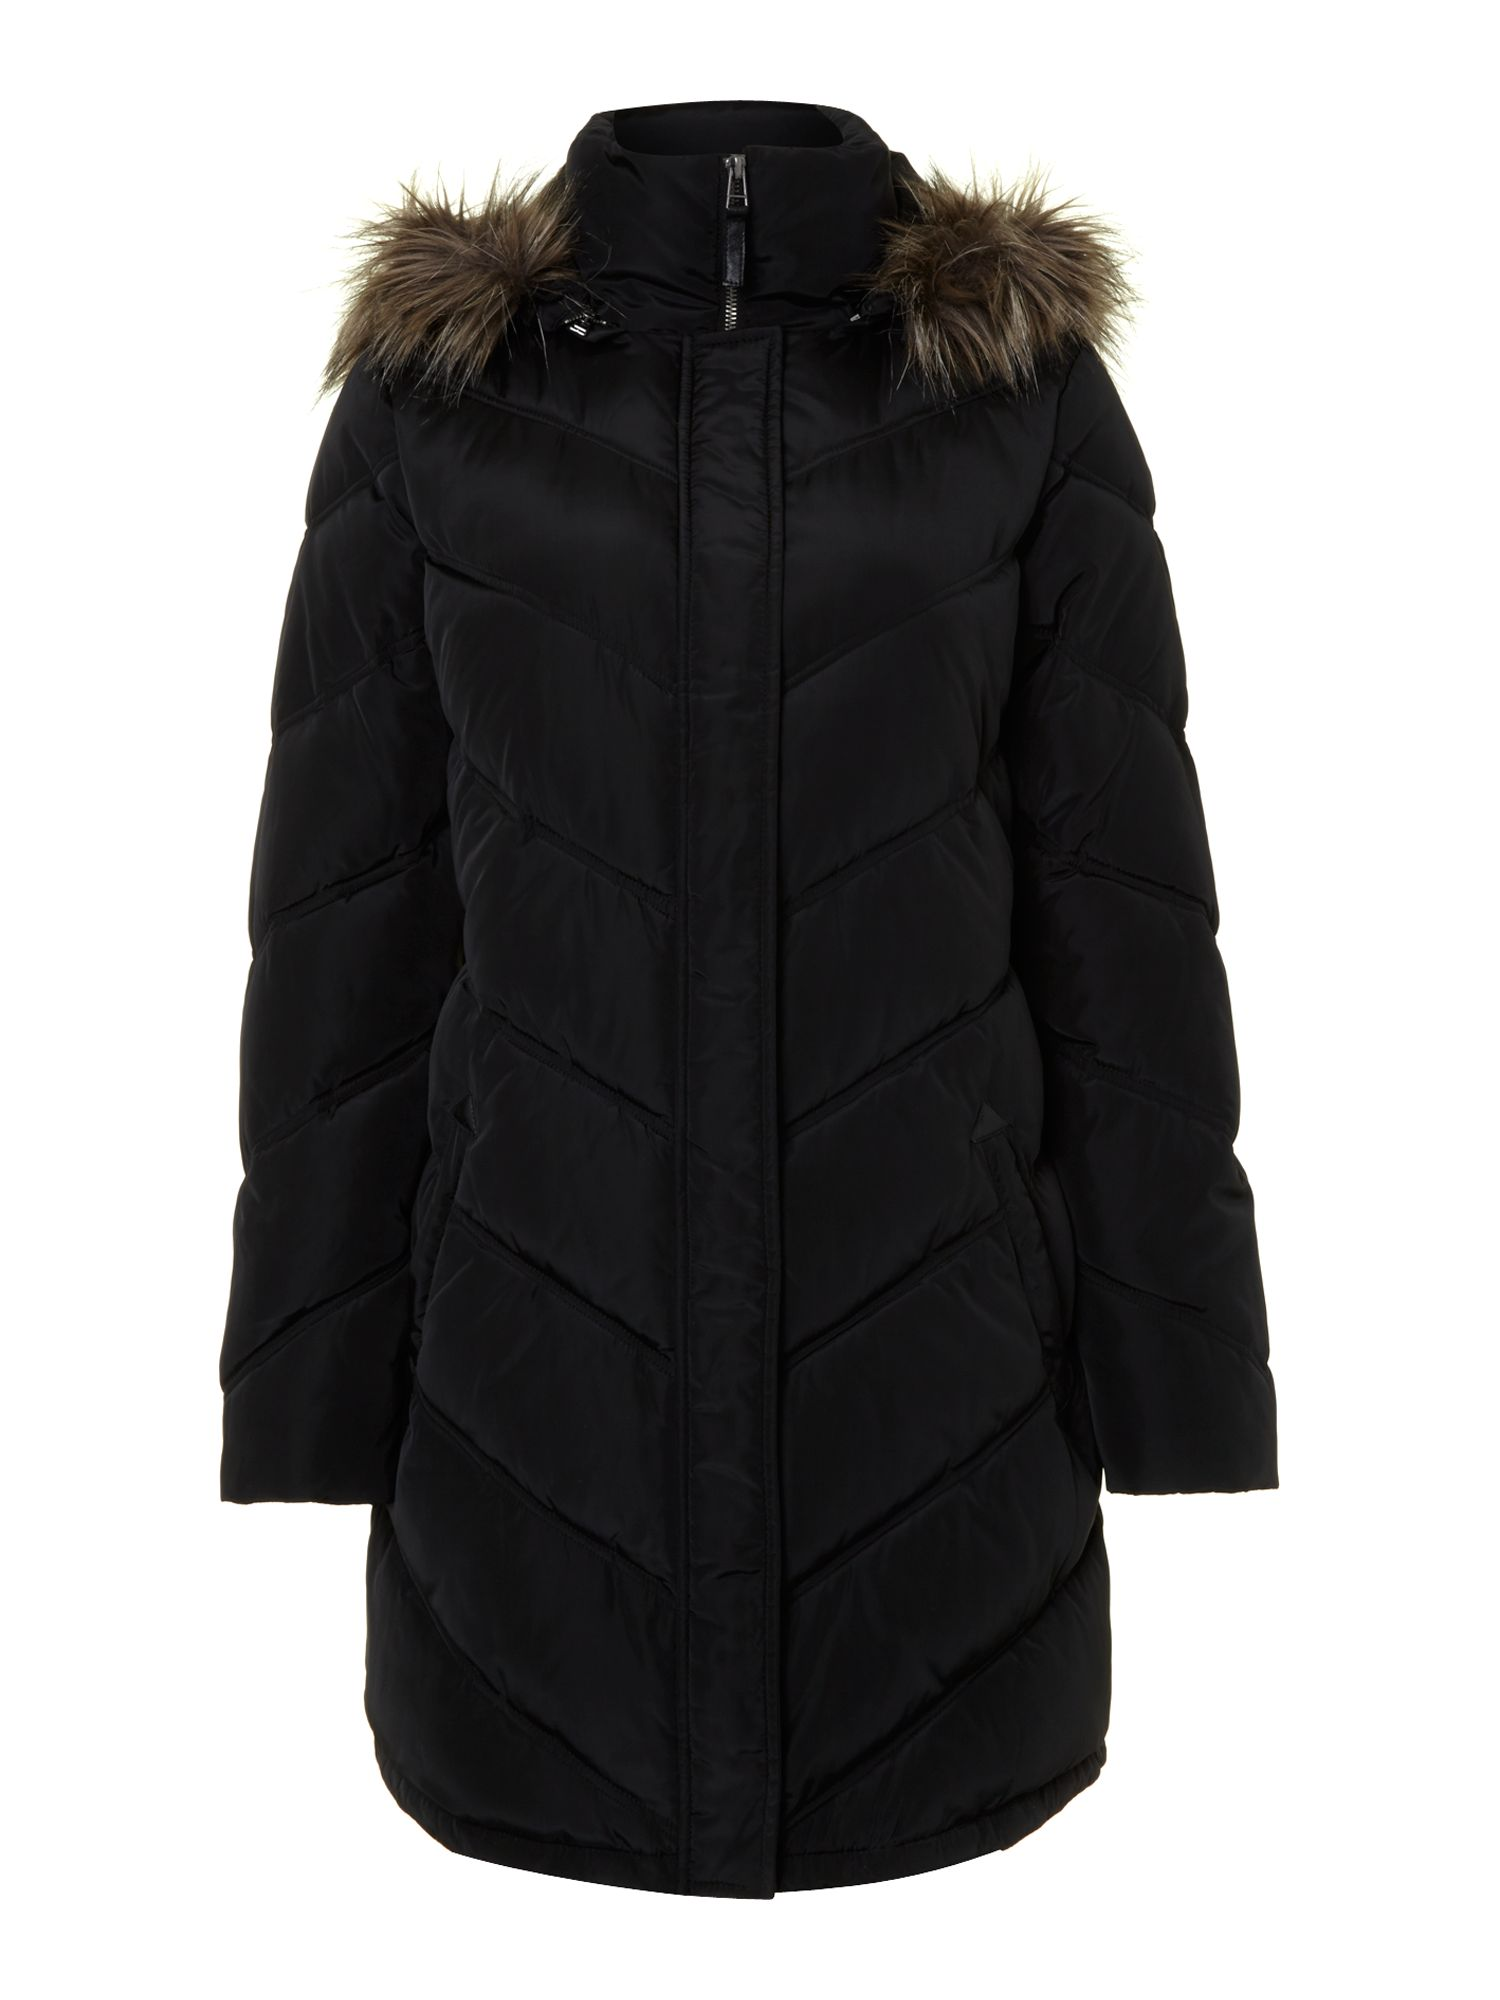 Long puffer coat with detachable faux fur hood